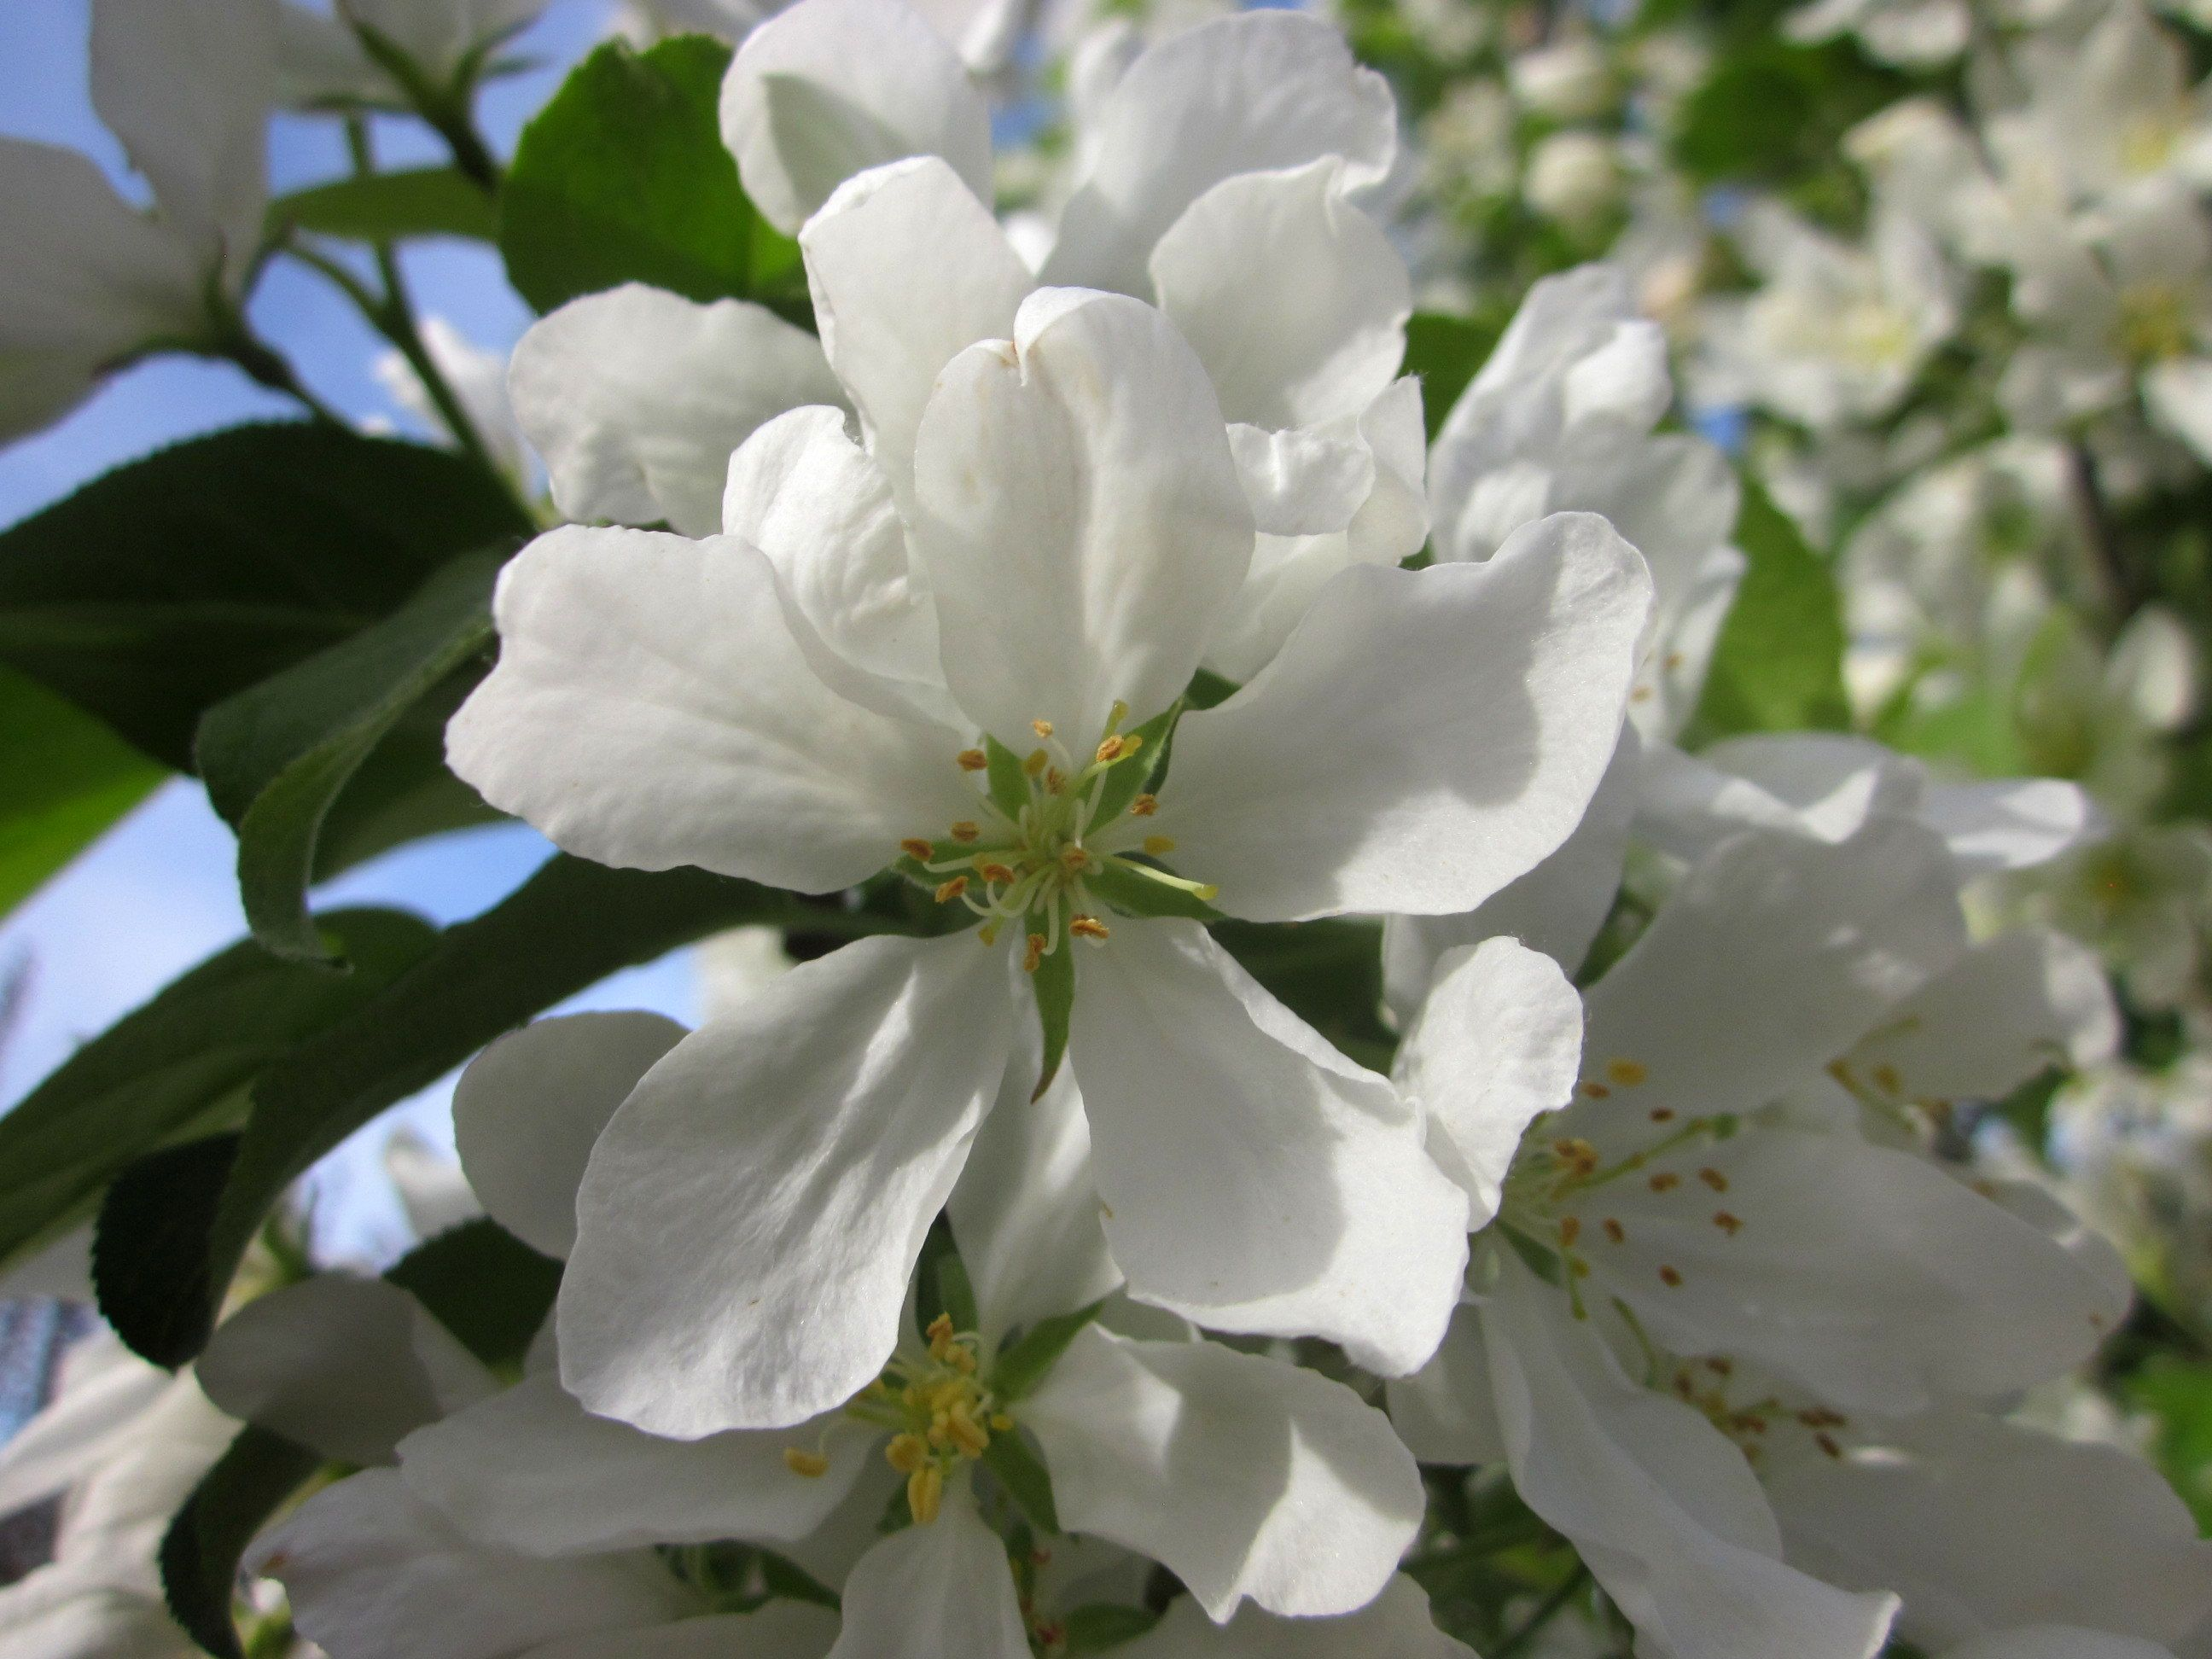 Malus Baccata Street Parade Known As Street Parade Crab Apple Is A